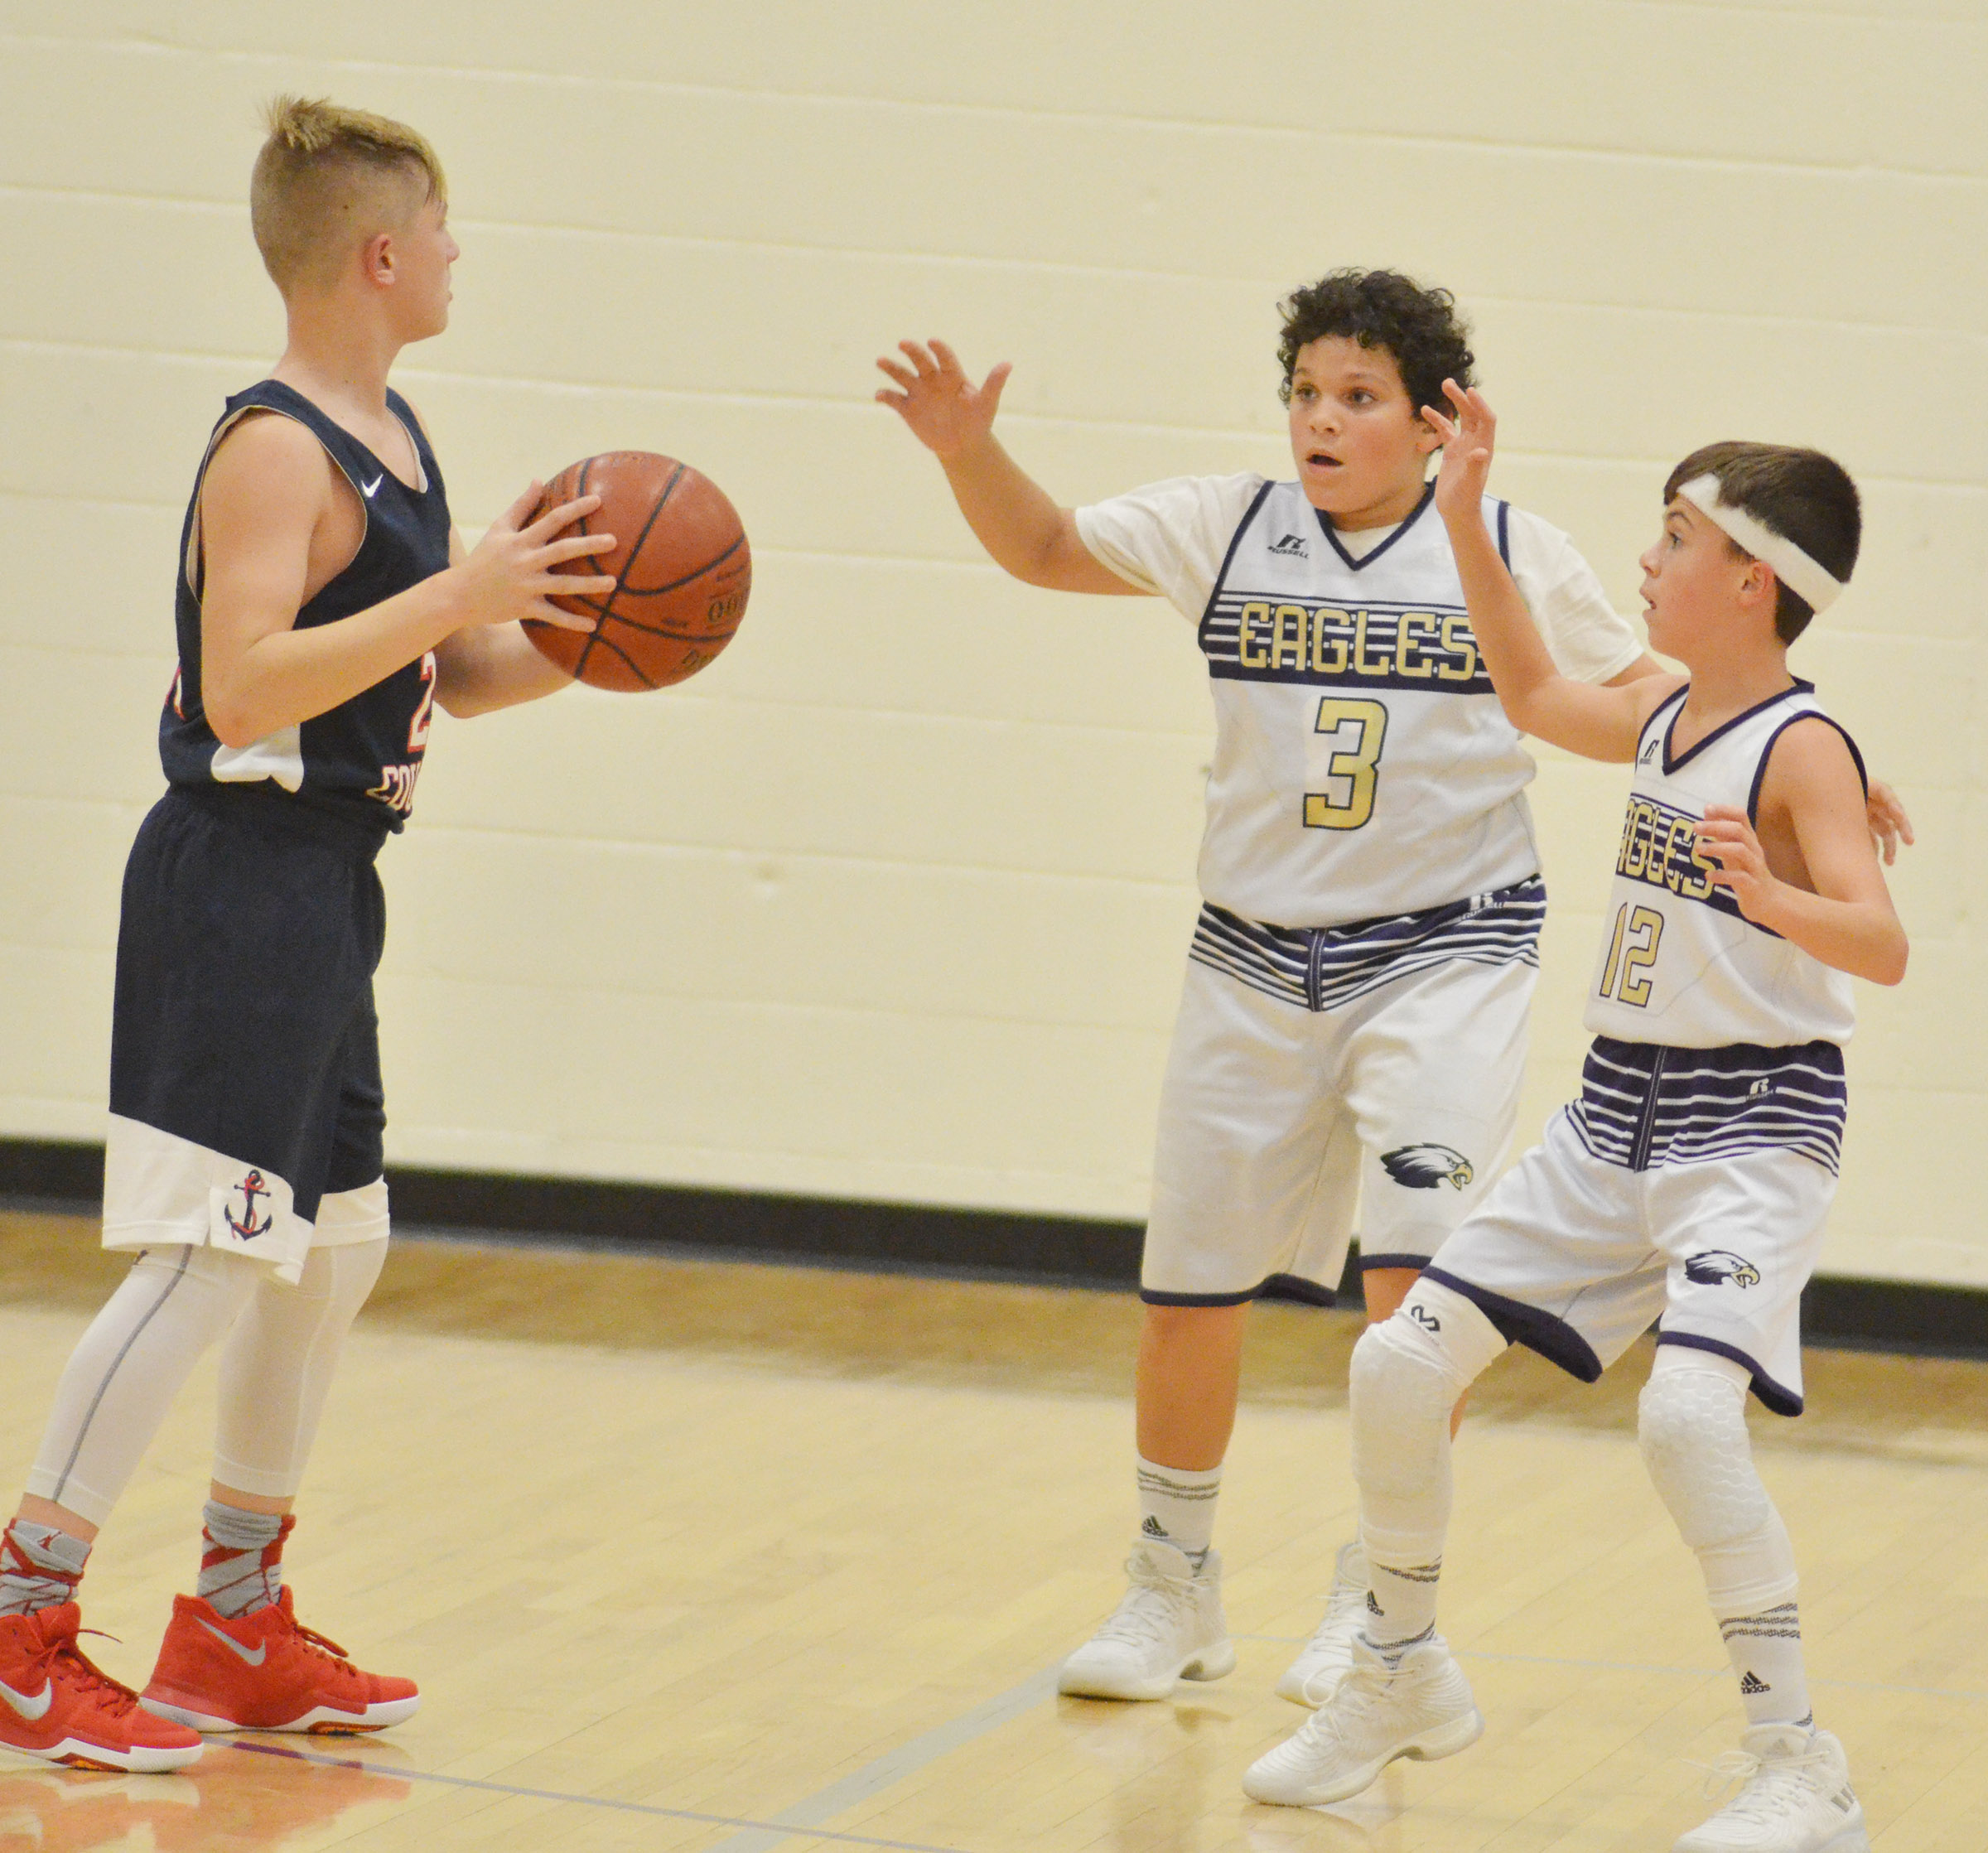 CMS seventh-graders Kaydon Taylor, at left, and Chase Hord play defense.